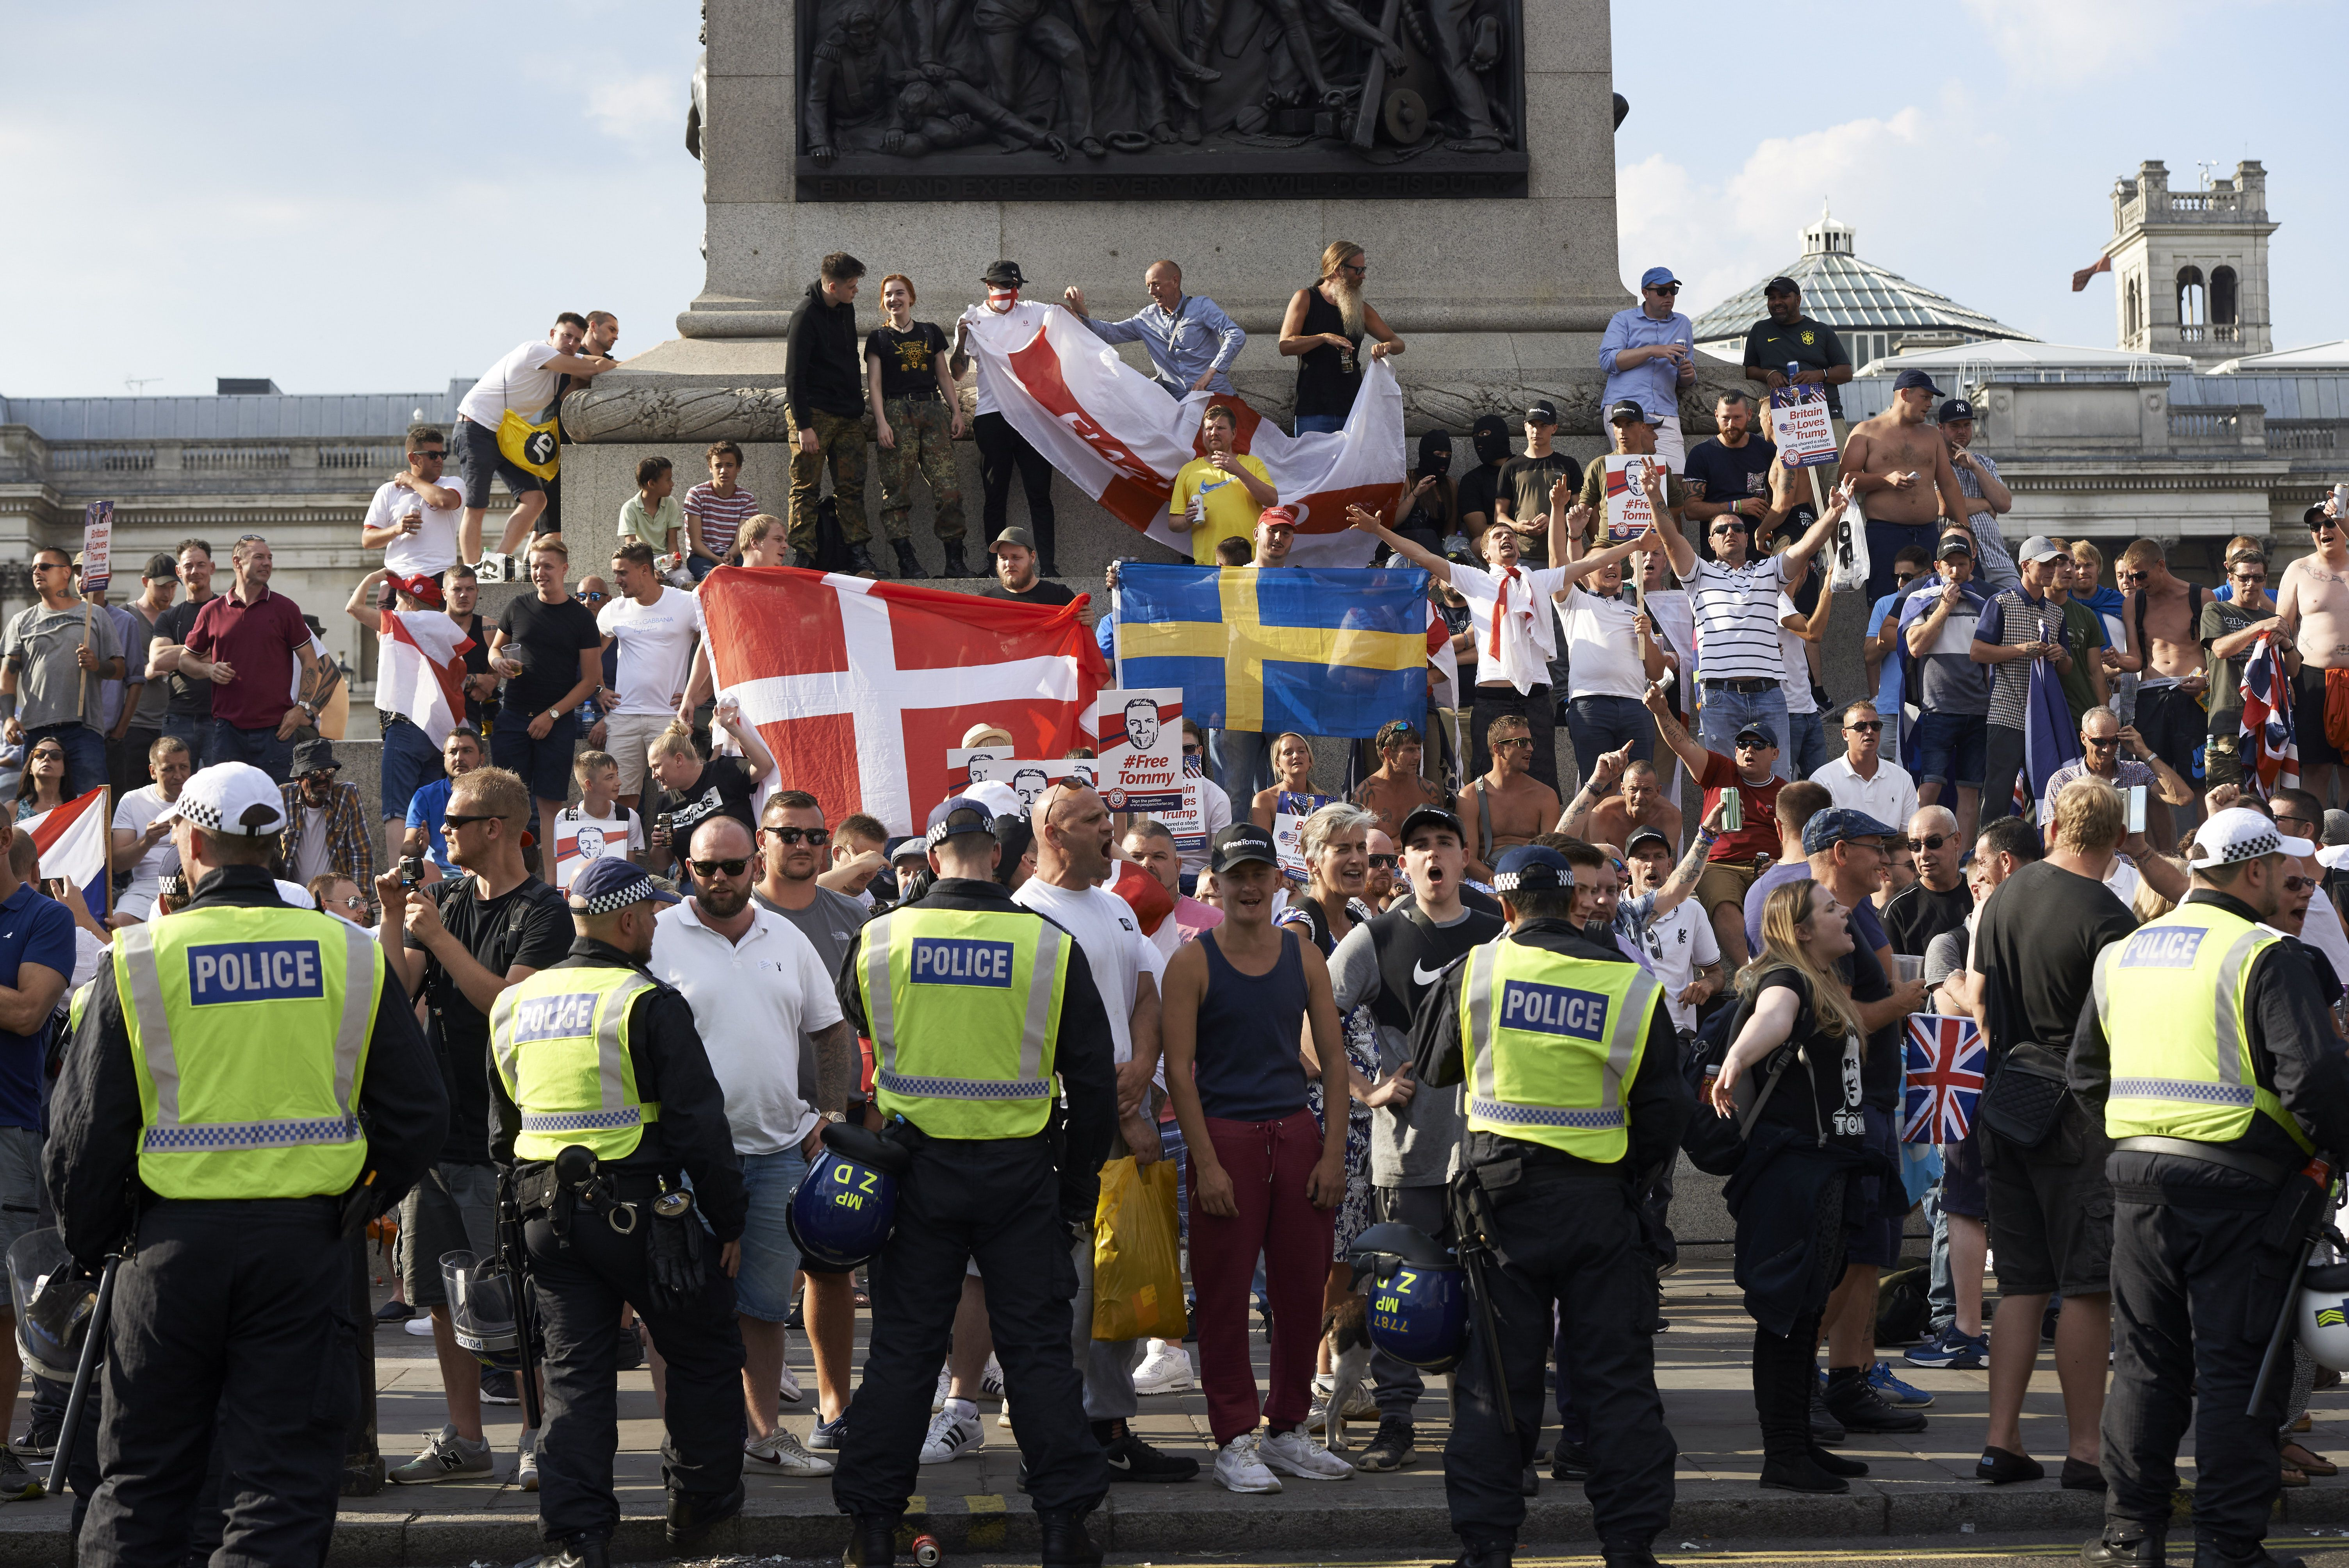 Protesters hold up flags and chant at a rally by supporters of far-right spokesman Tommy Robinson in Trafalgar Square in central London on July 14, 2018, following the jailing of Tommy Robinson for contempt of court. (Photo by Niklas HALLE'N / AFP) (Photo credit should read NIKLAS HALLE'N/AFP/Getty Images)